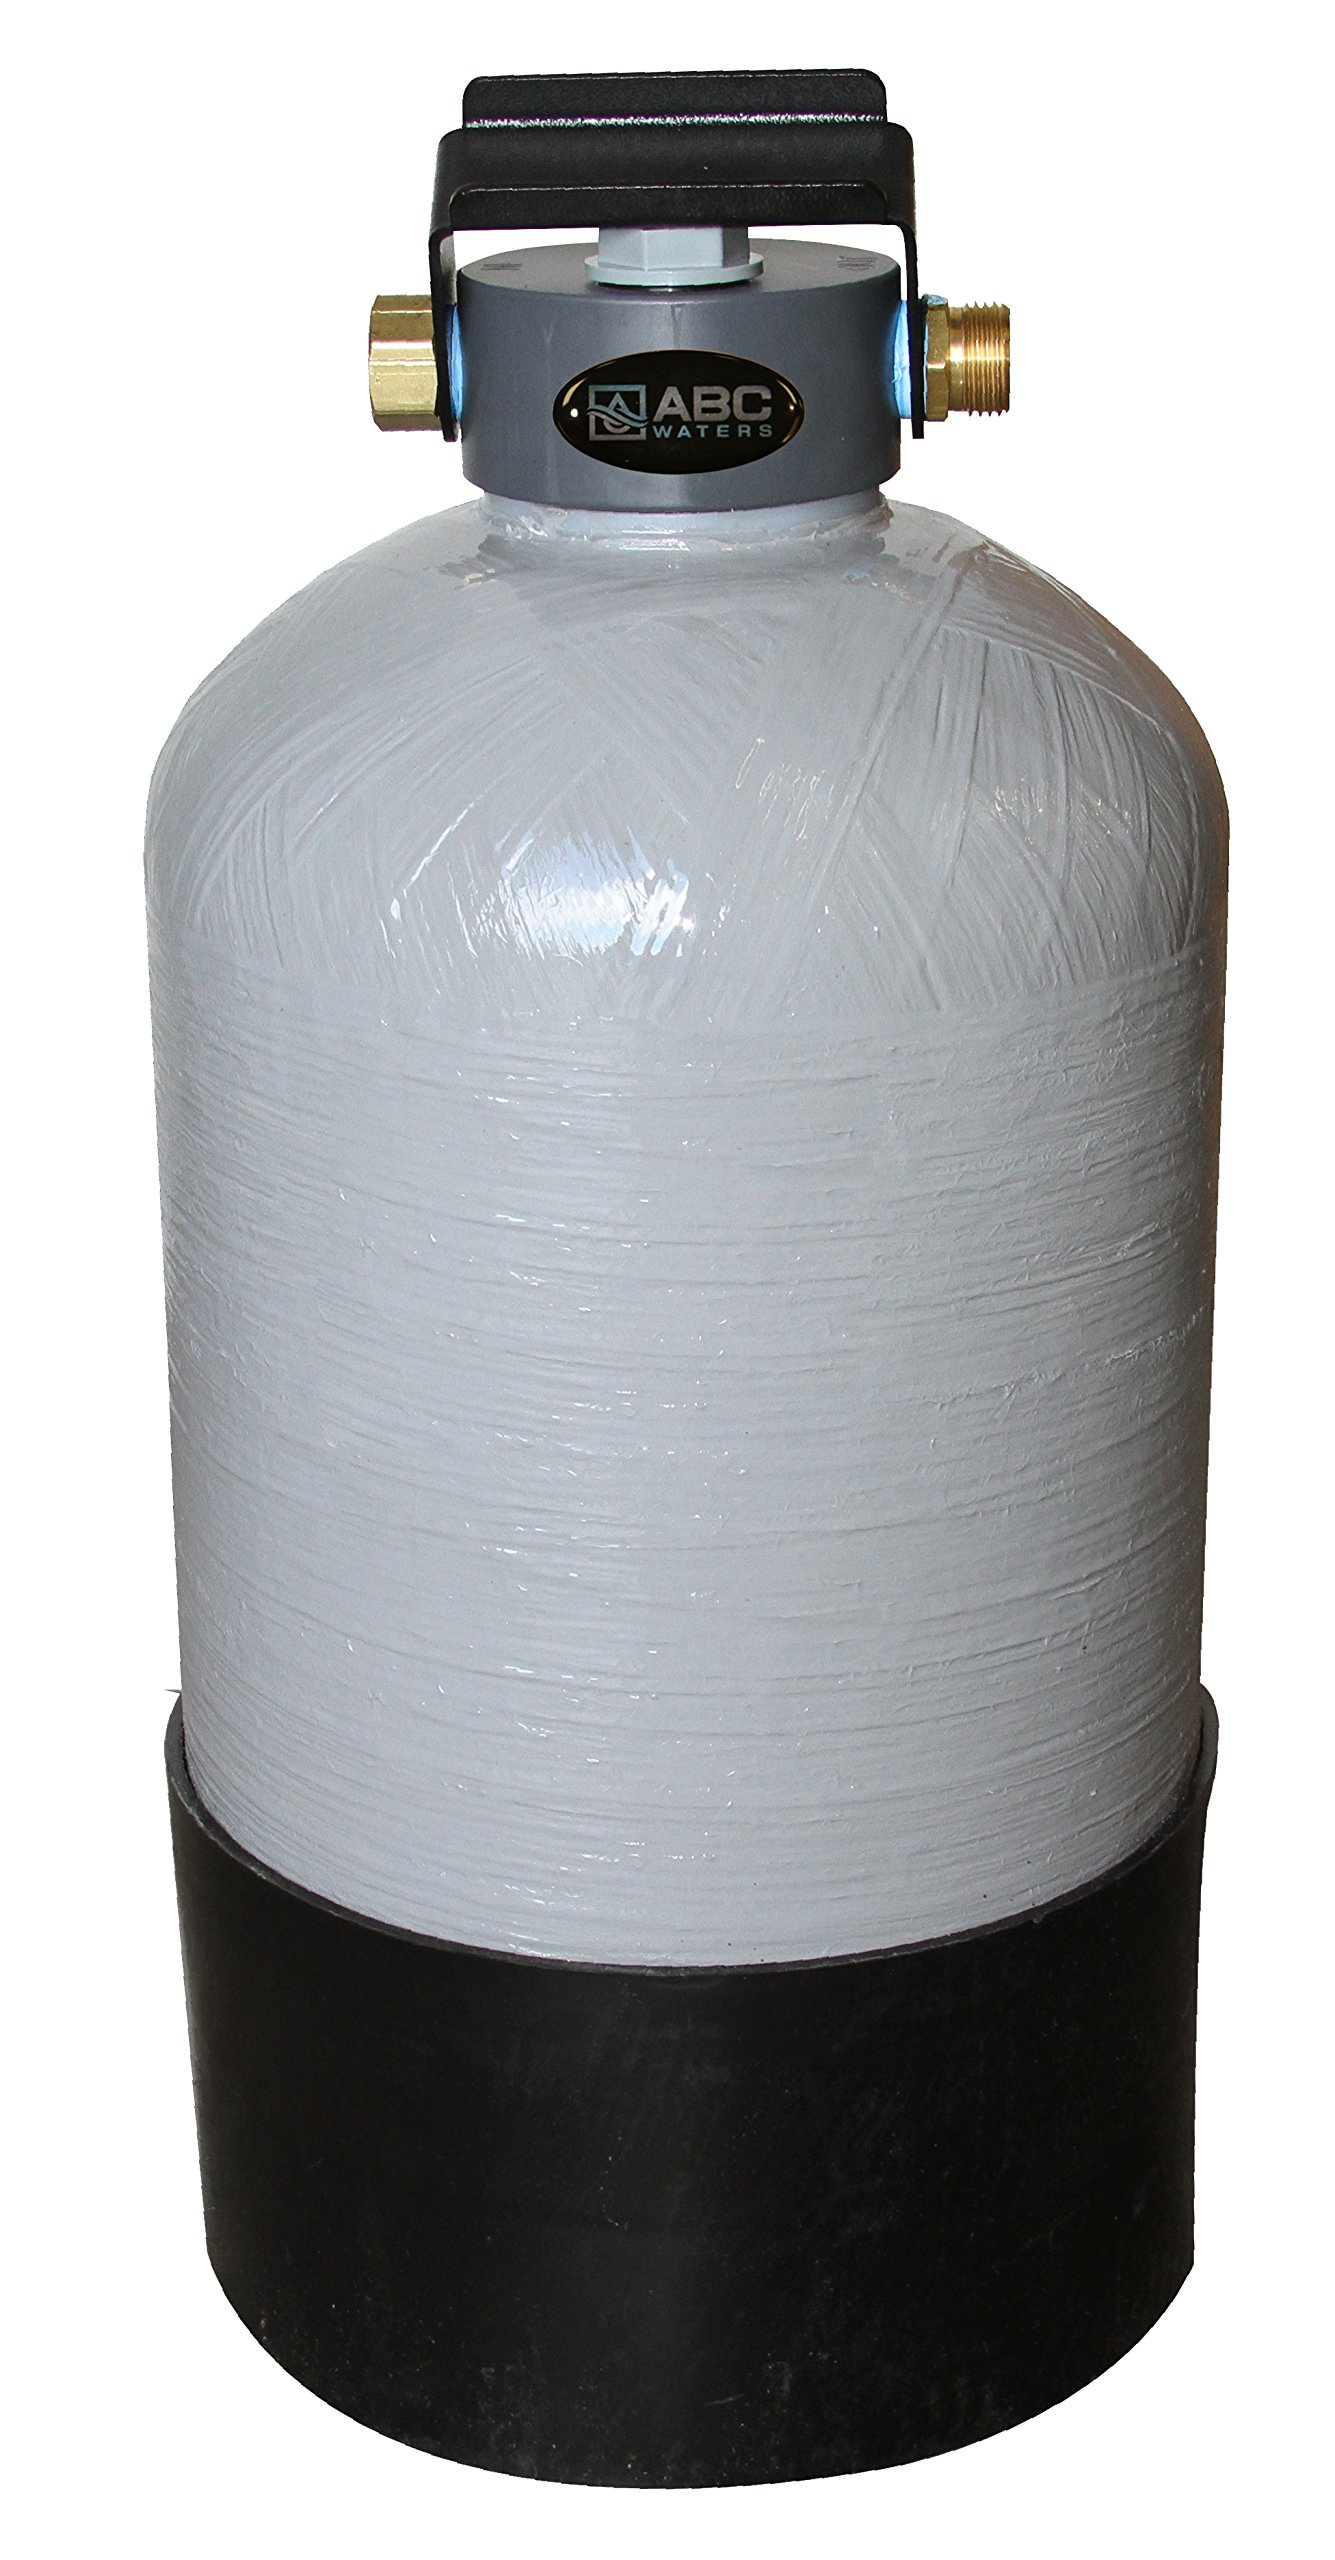 Portable Water Softener 16,000 Grain Capacity, Perfect for Your Rv, Boat or Car Washing. by ABCwaters (Image #3)